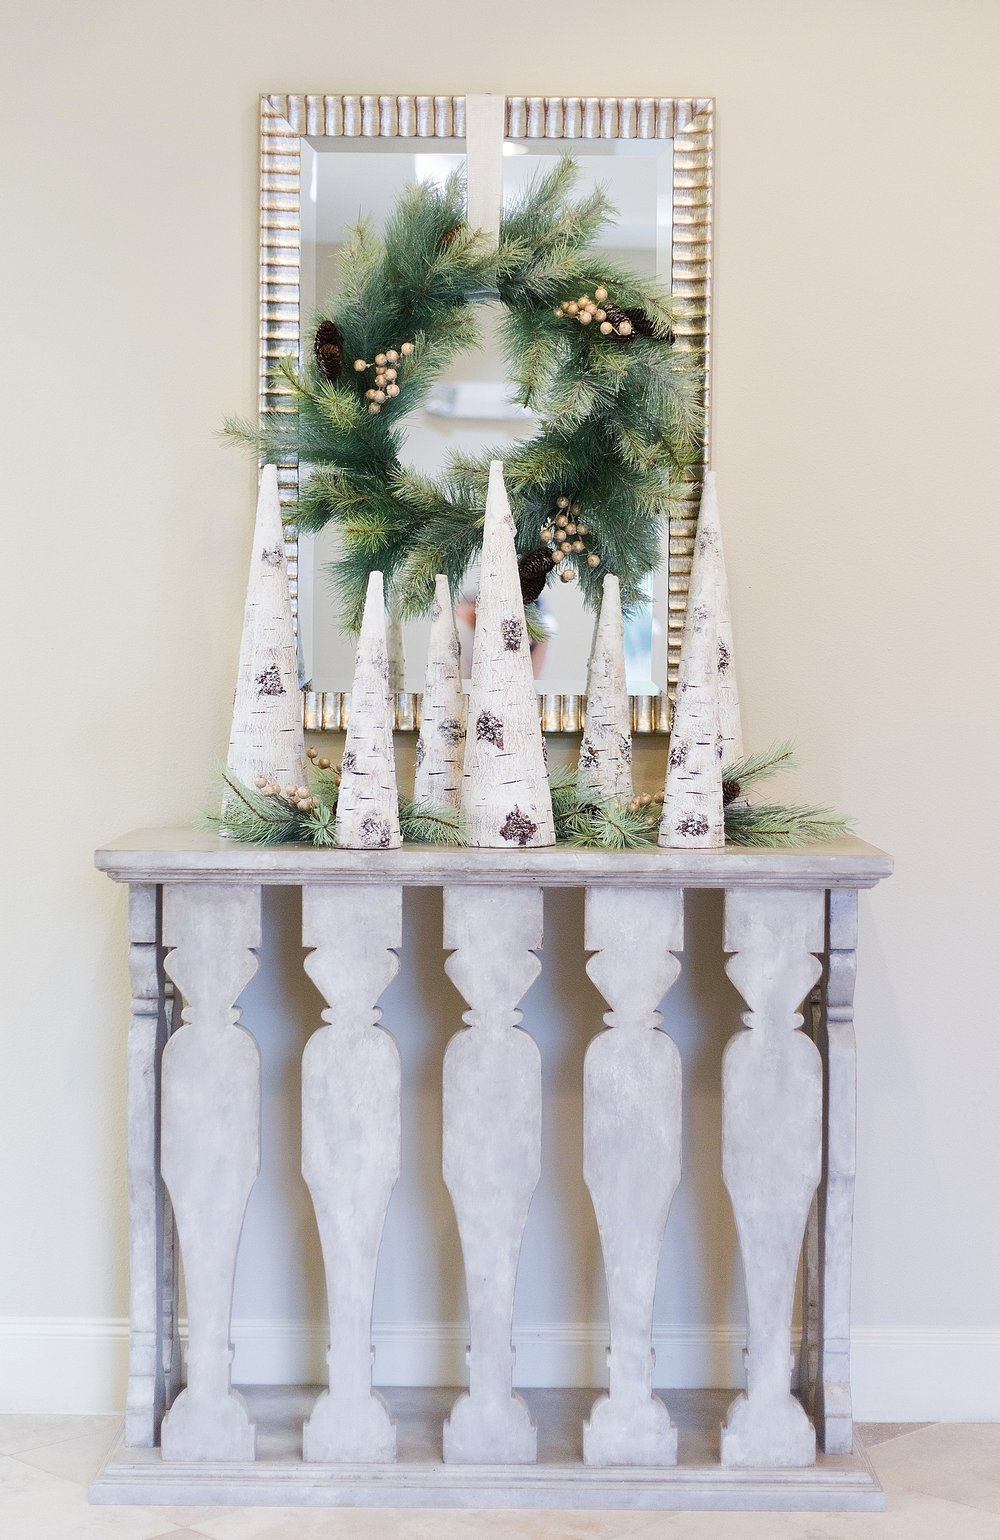 Christmas Woodlands Holiday Decorating - console decor with wreath on mirror / Designed w/ Carla Aston